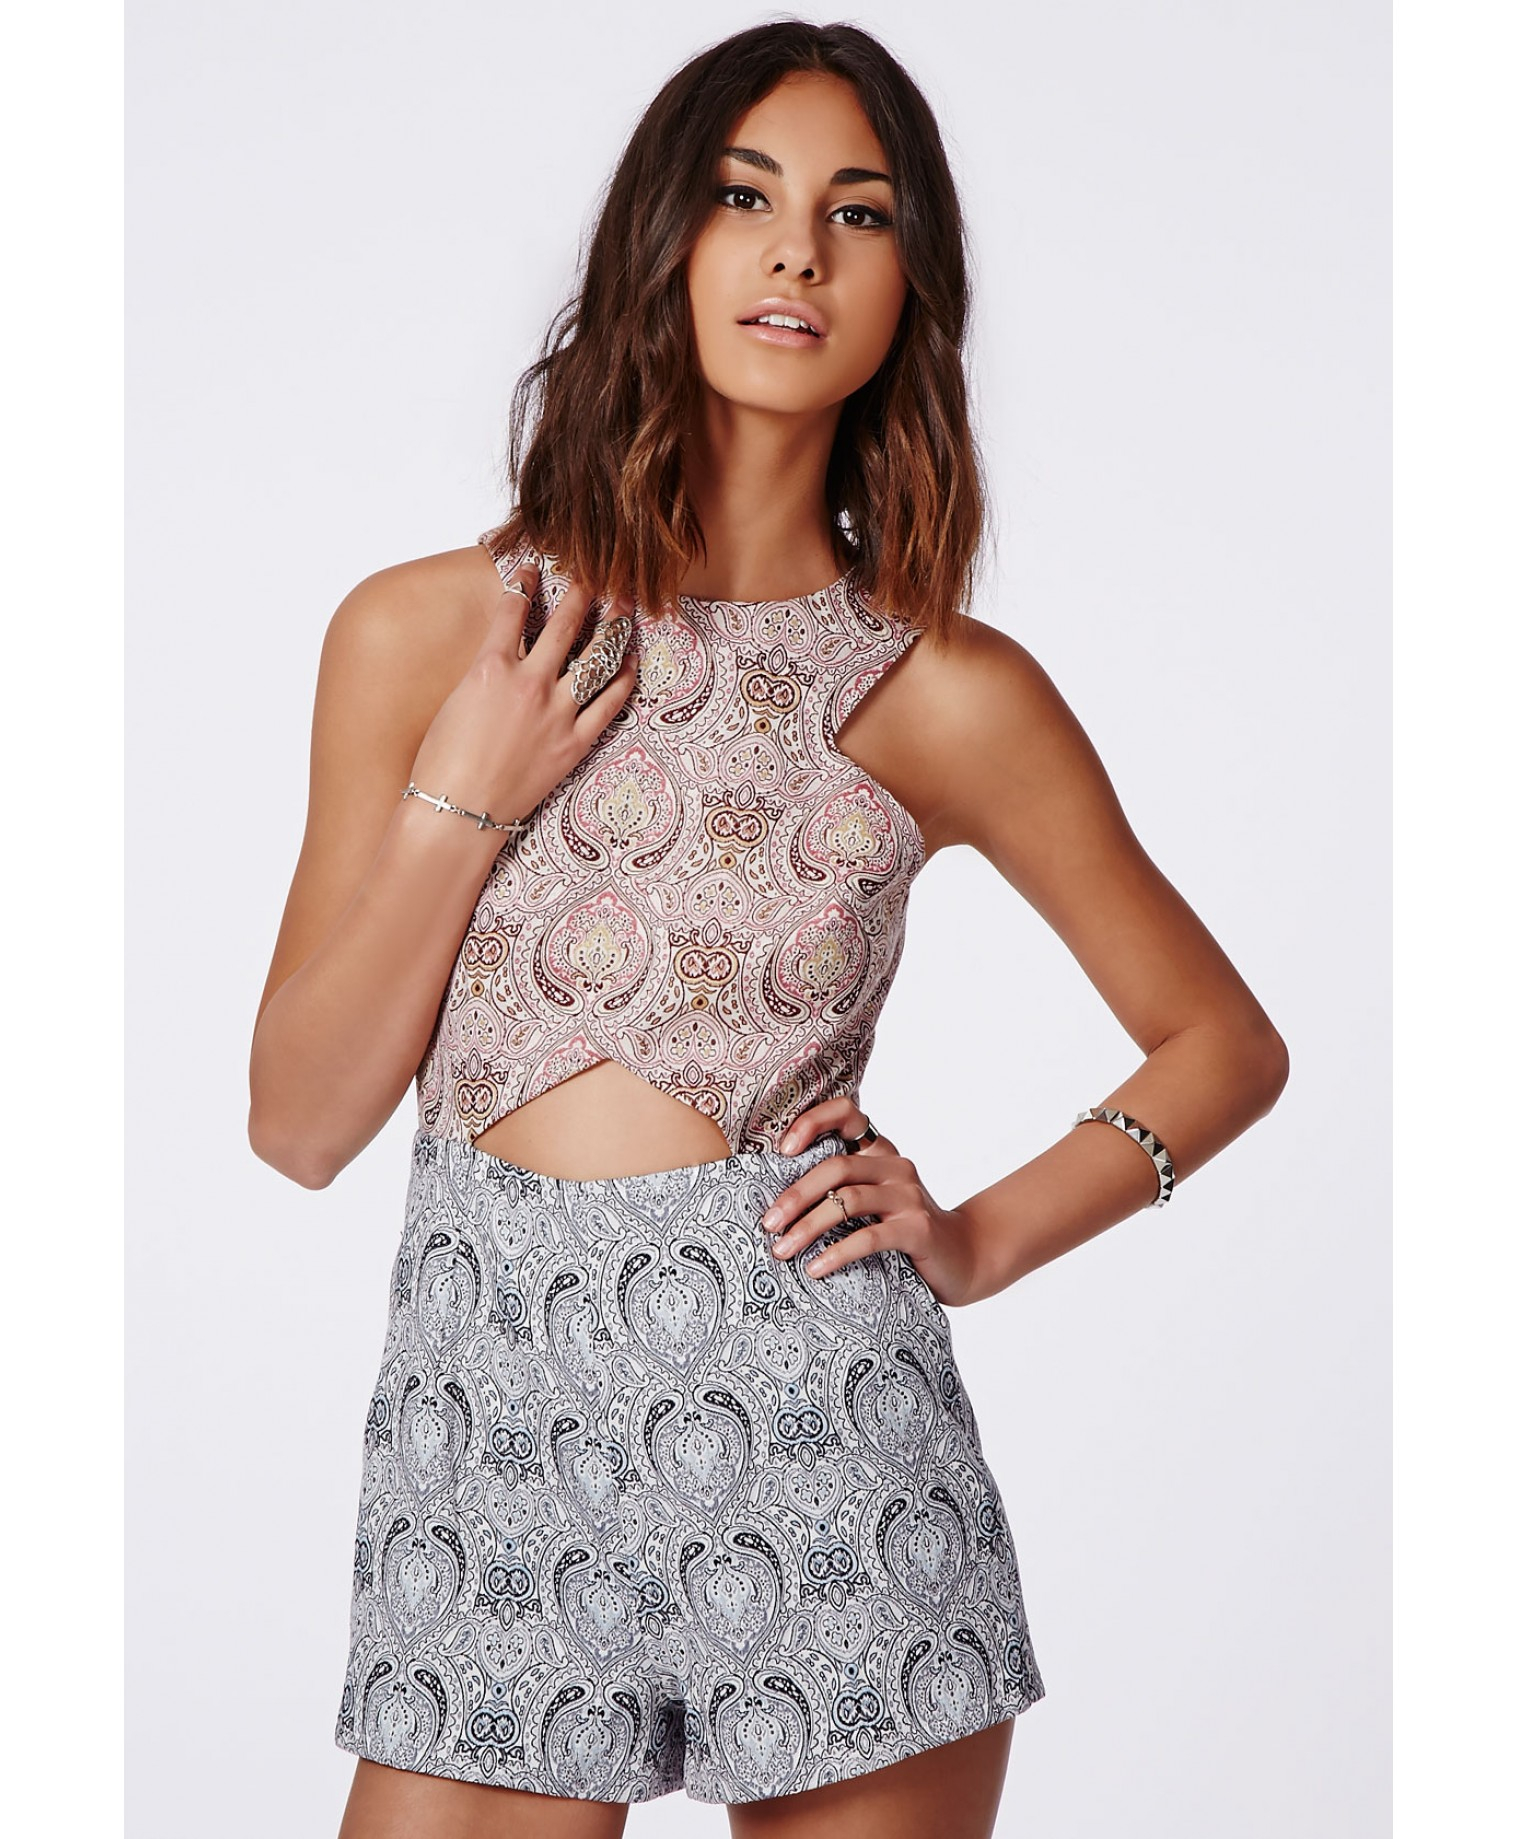 04cc4107d3 Missguided Abigail Contrast Paisley Cut Out Detail Romper in Pink - Lyst